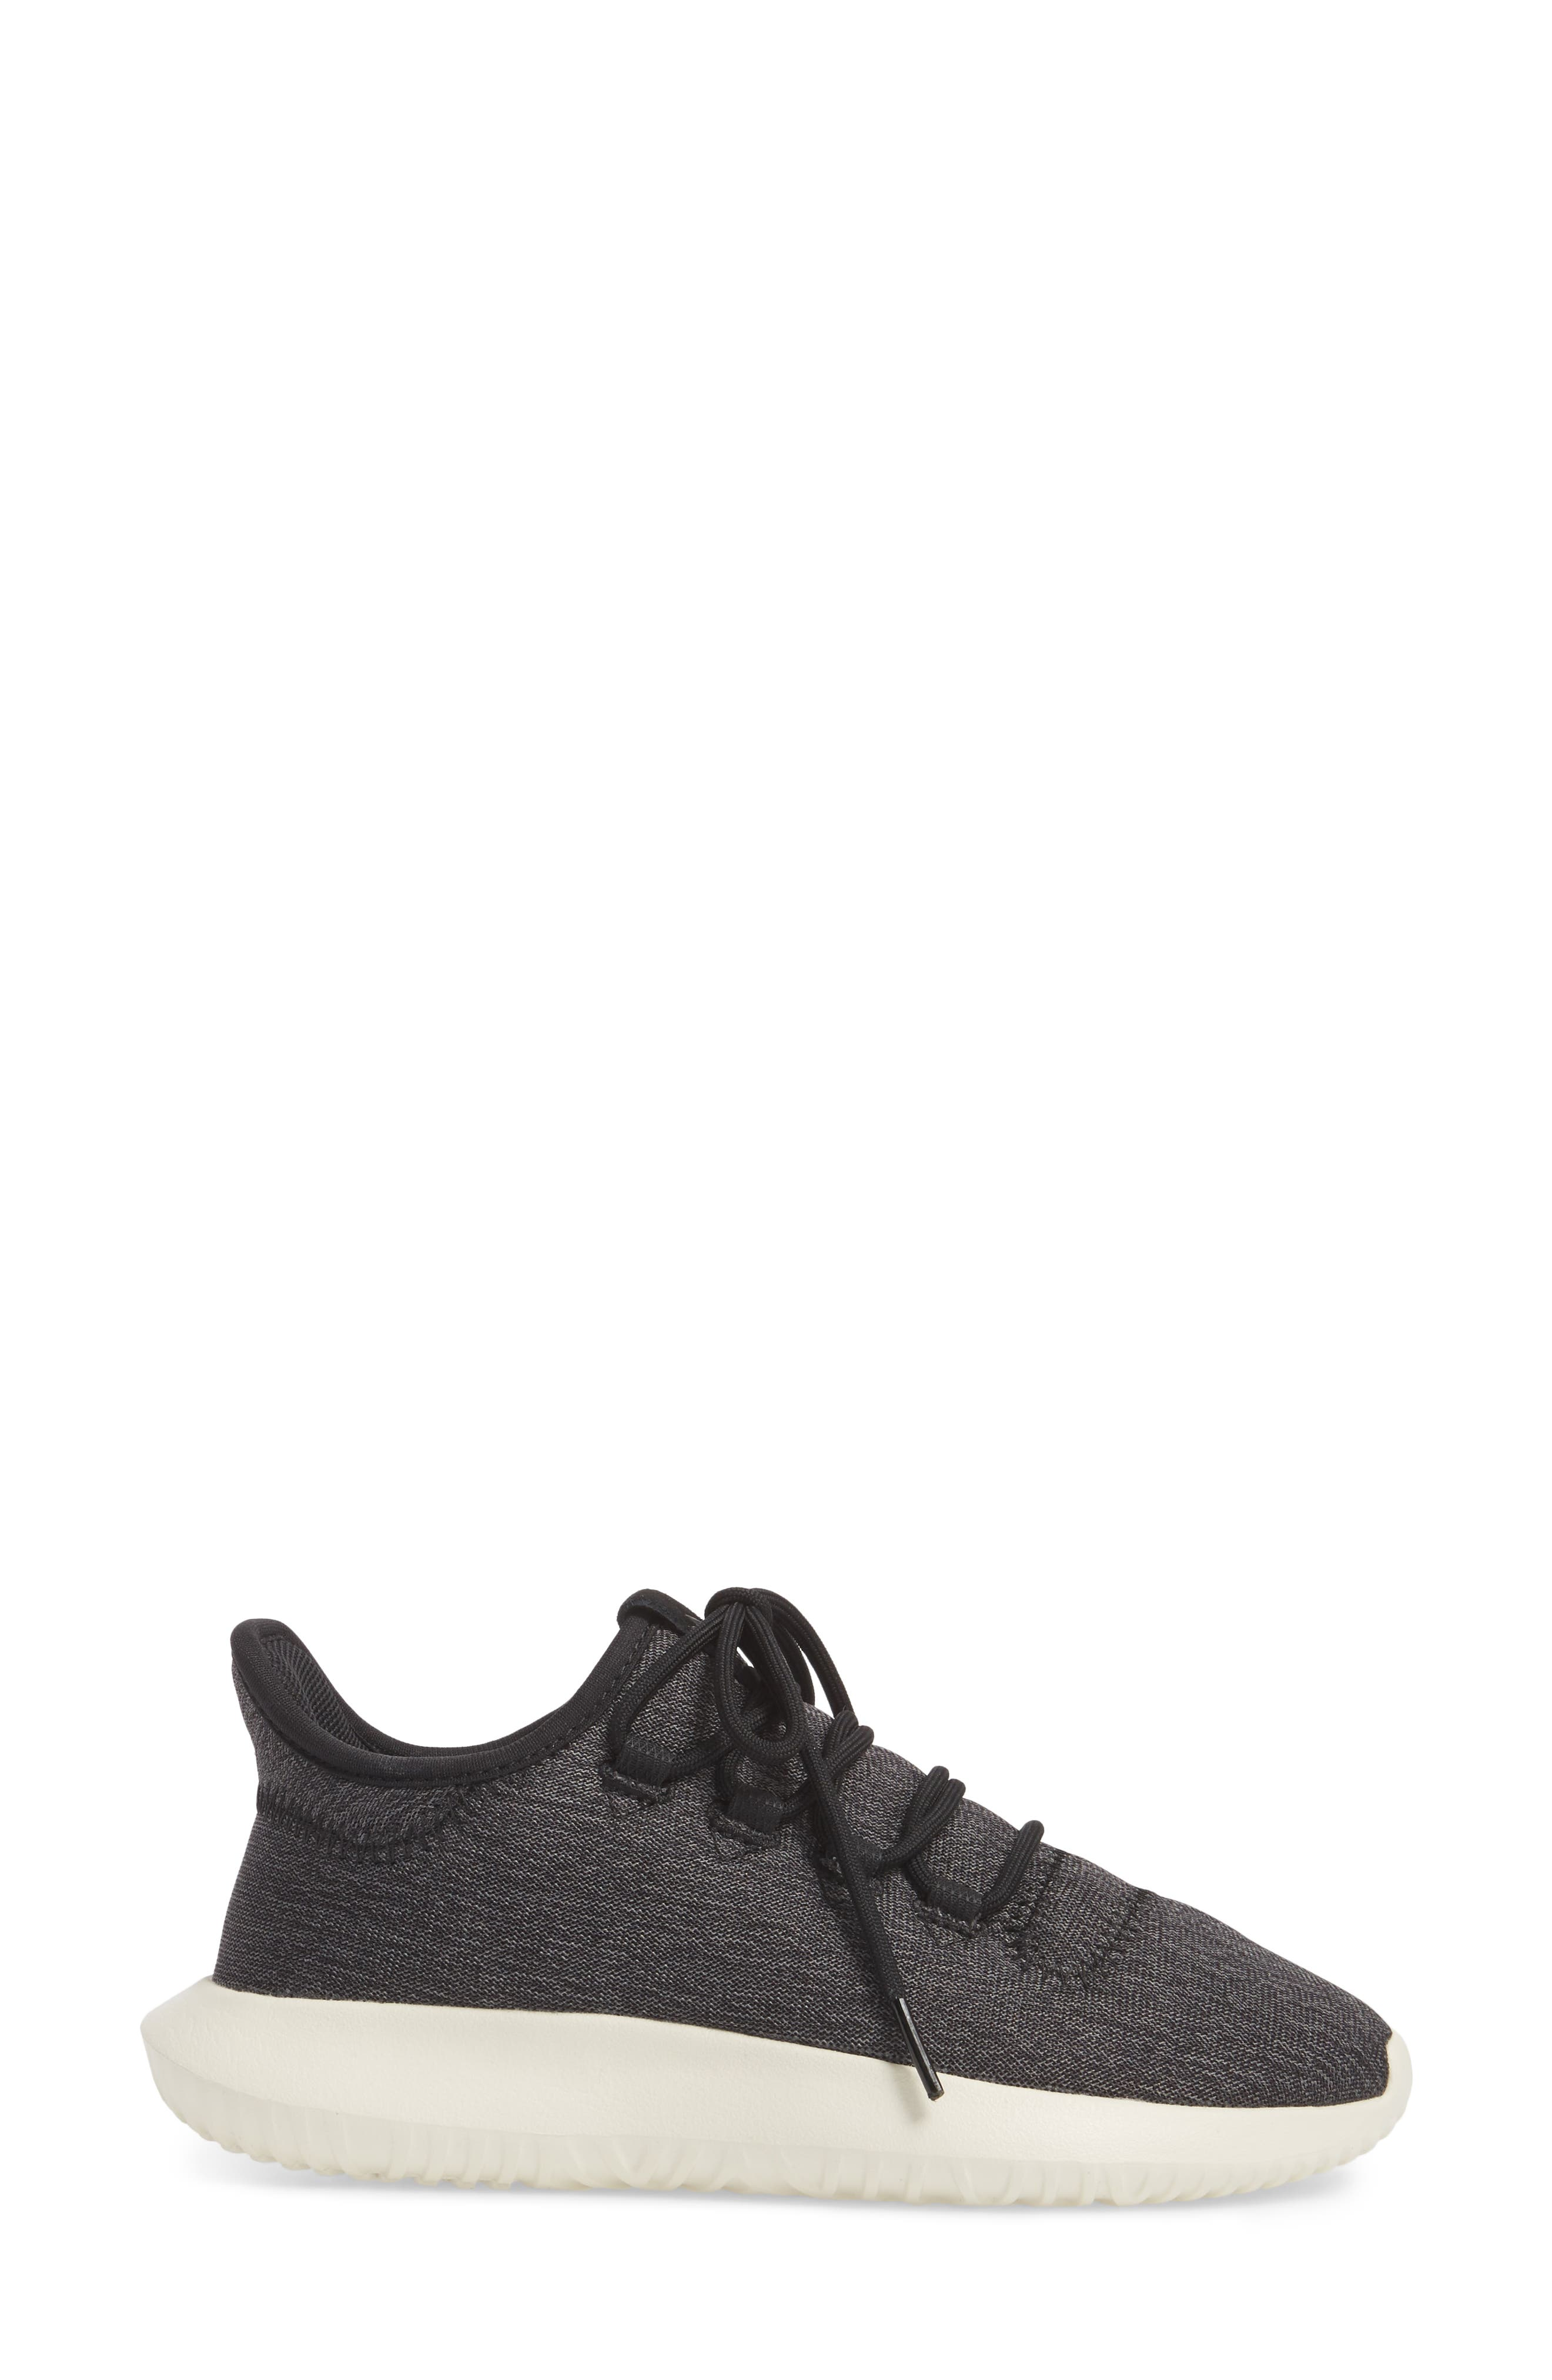 Tubular Shadow Sneaker,                             Alternate thumbnail 13, color,